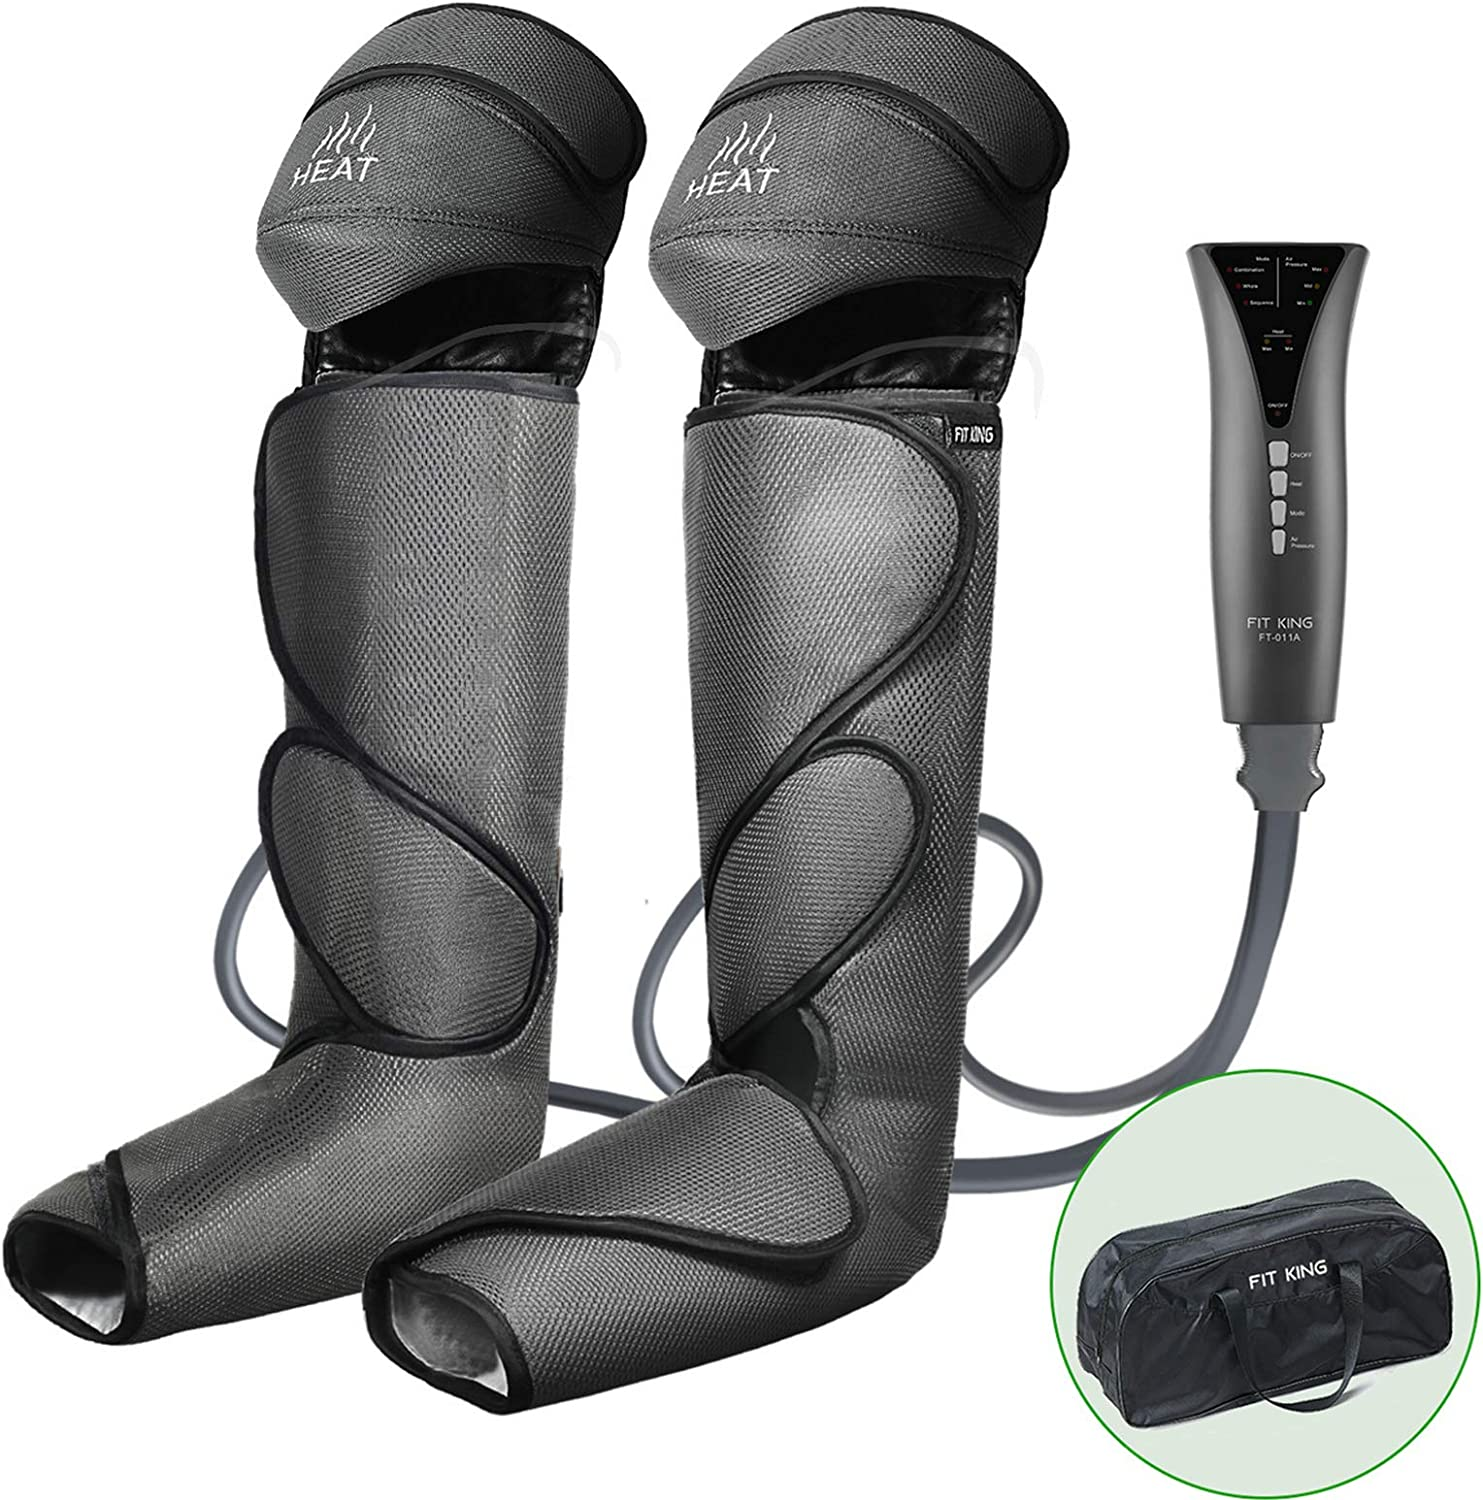 B07RLW6QN7 FIT KING Foot and Leg Massager for Circulation with Knee Heat with Hand-held Controller 3 Modes 3 Intensities FT-011A 71Zx8Inj32L.SL1500_